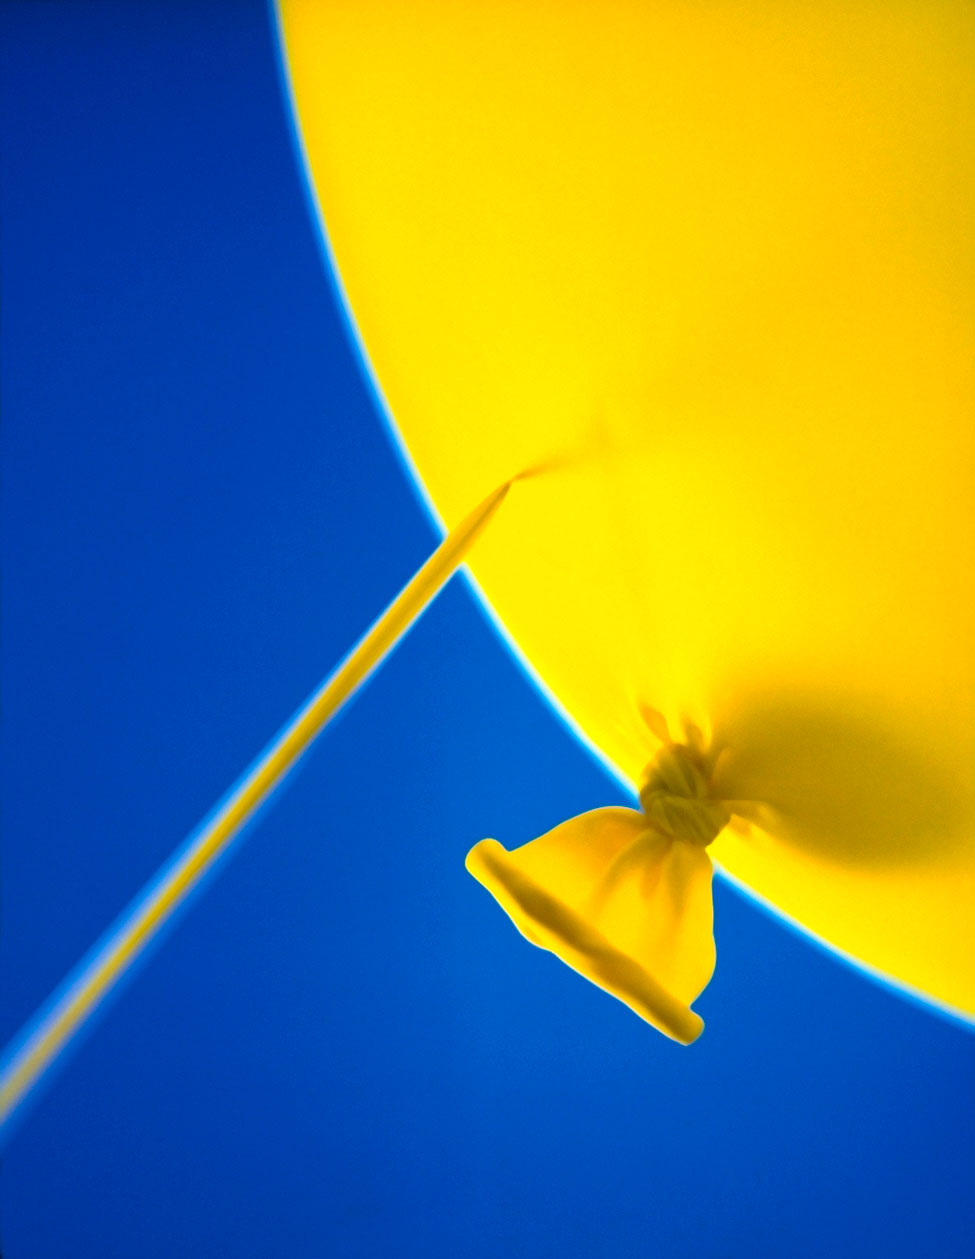 Rick Davis Photographic, Philadelphia, Still Life, Photography, Still Life Photography, Balloon, Pop, Needle